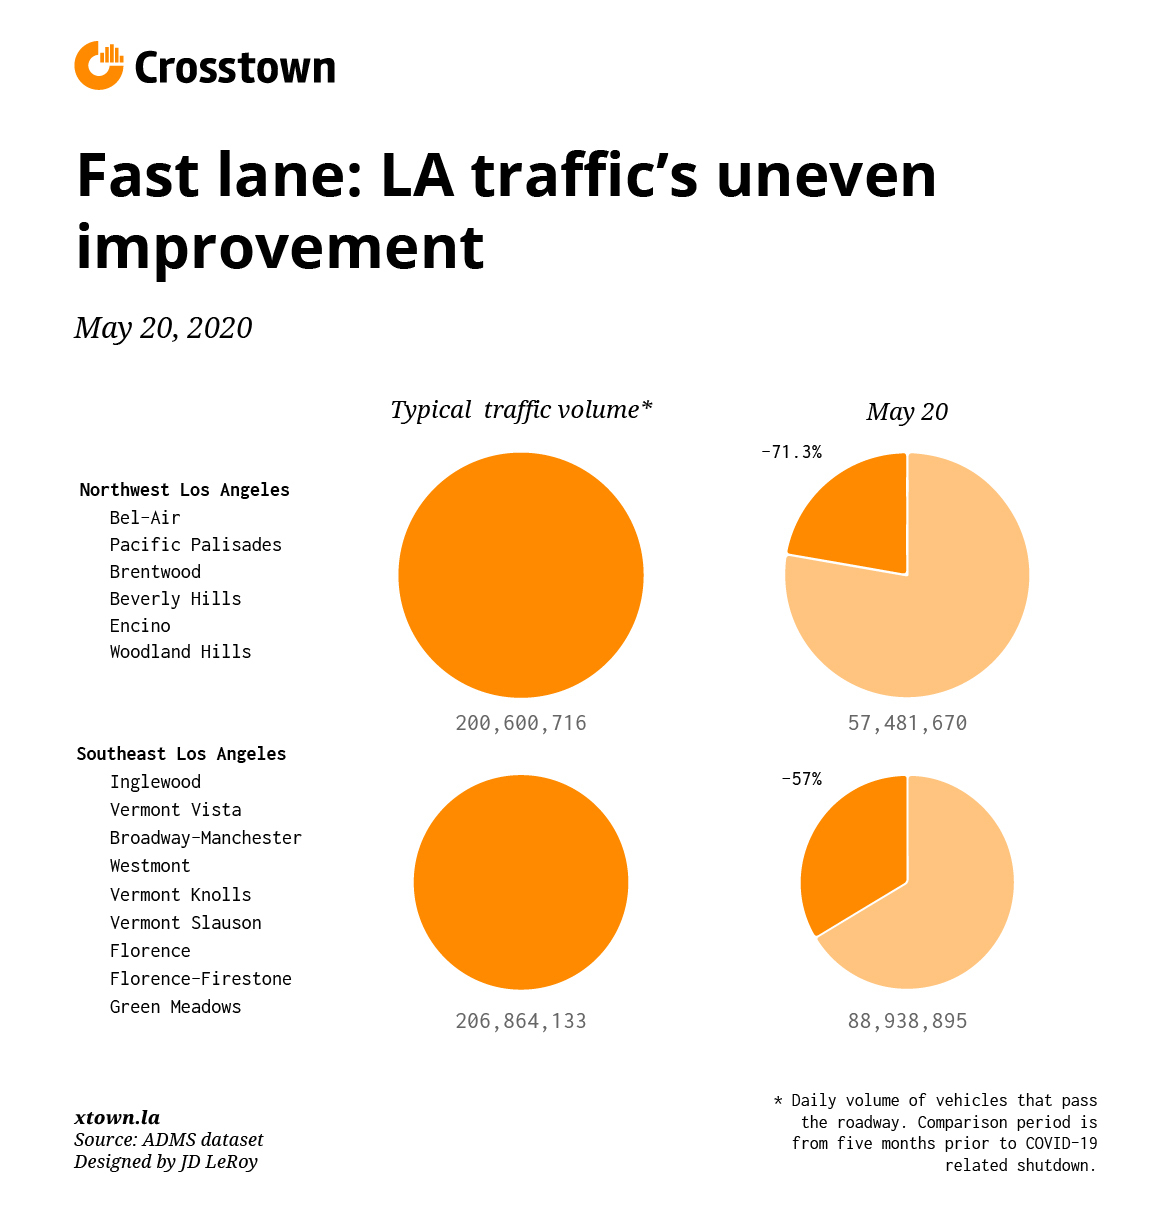 Graph showing how changes in traffic have hit different parts of Los Angeles in different ways